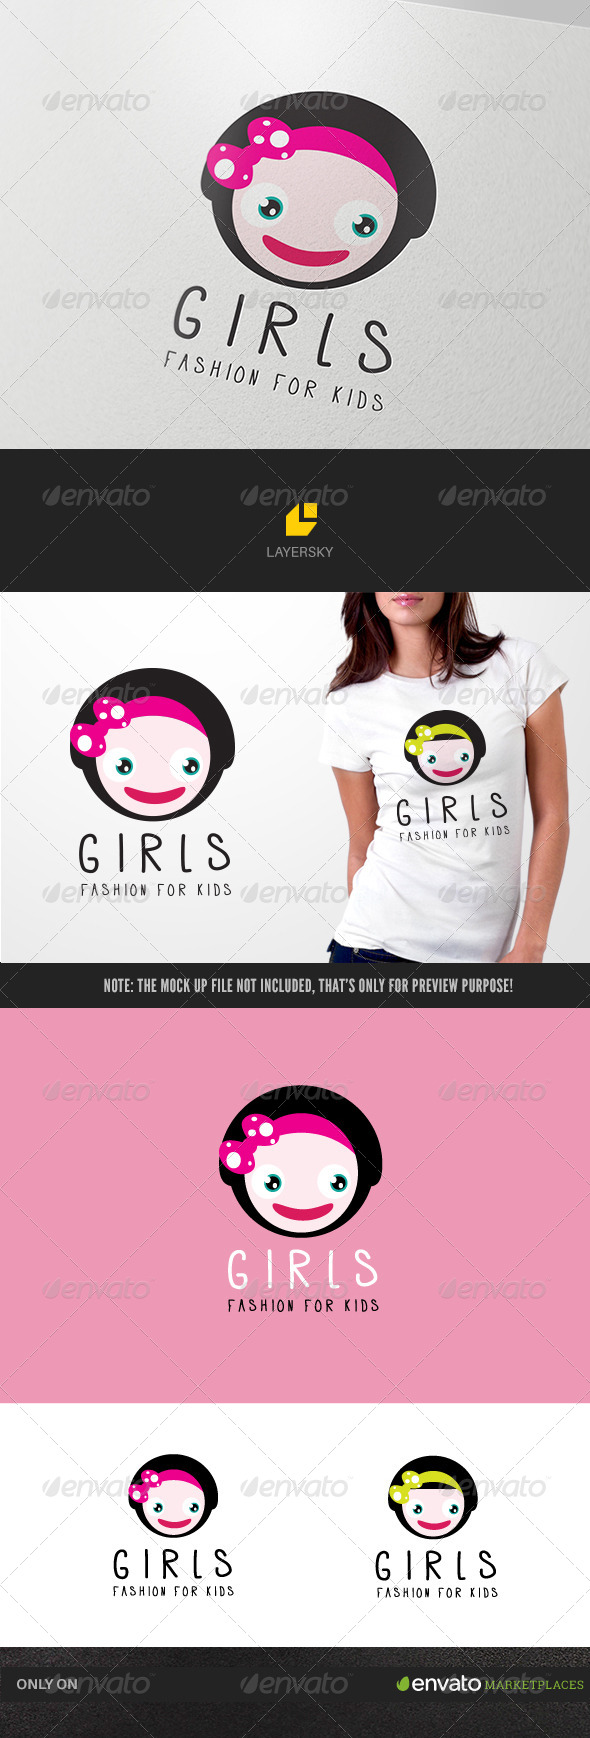 GraphicRiver Girls Fashion 7867063